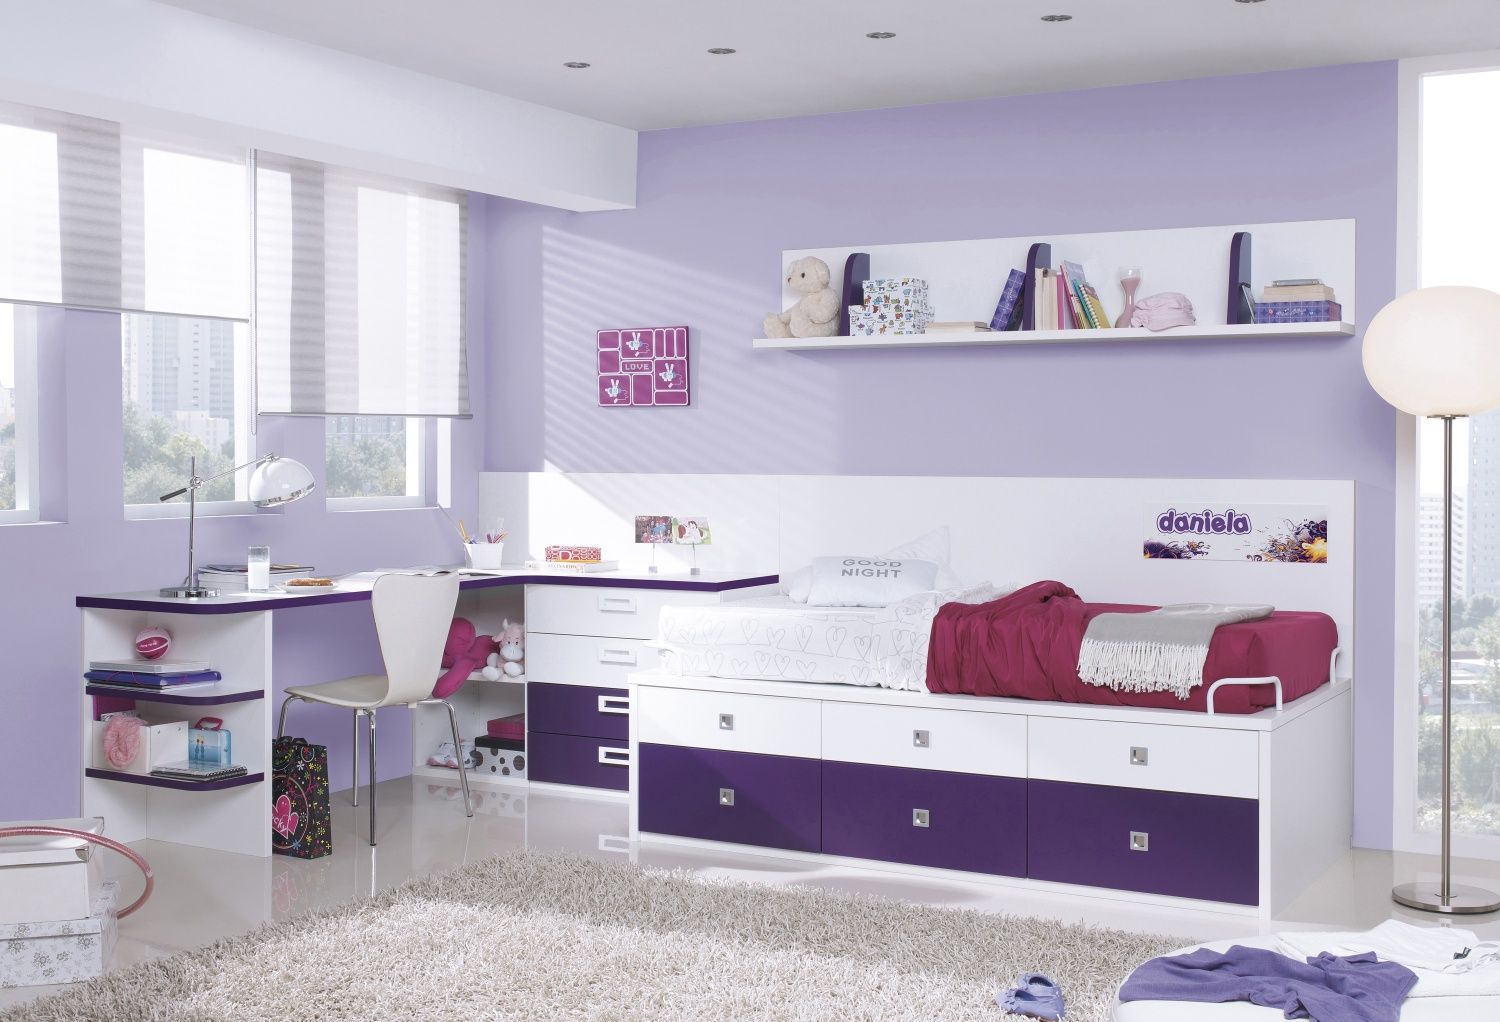 Amazing Kids Trundle Bed With Storage Drawer Finish White And Eggplant Purple Combine L Childrens Bedroom Furniture Master Bedroom Furniture Kids Bedroom Sets